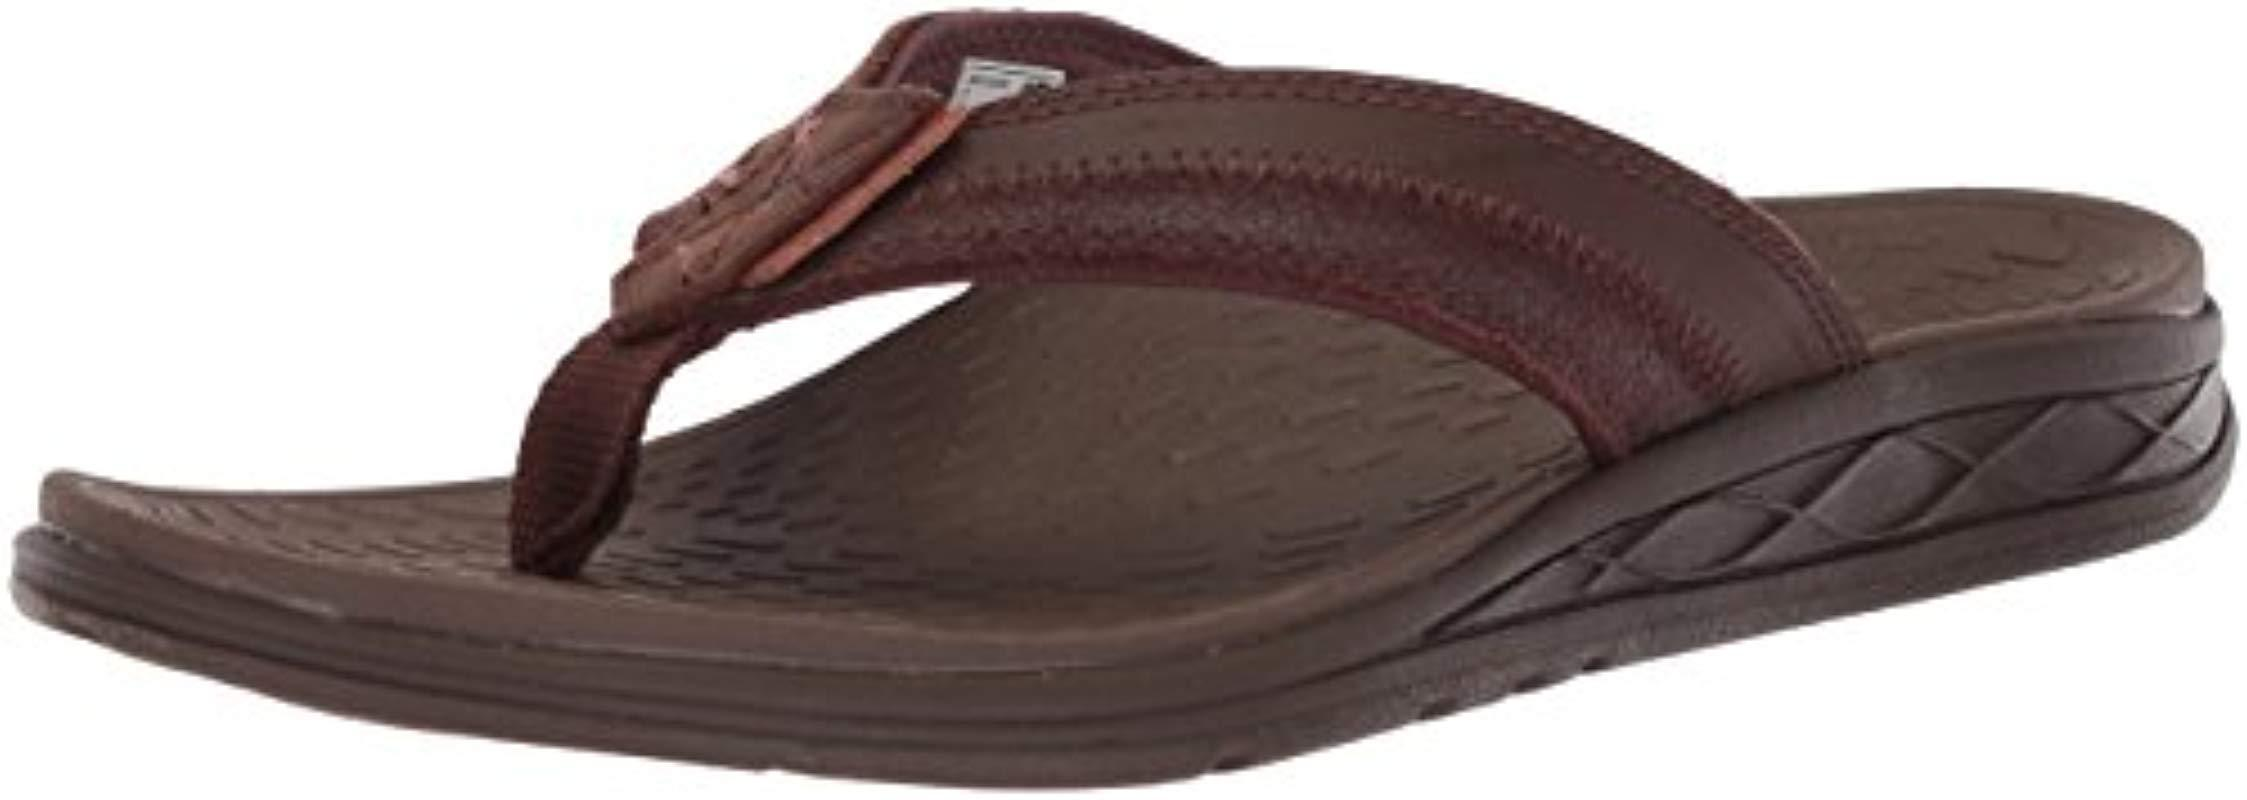 2aa163077 Lyst - New Balance Pinnacle Flip Flop in Brown for Men - Save 12%